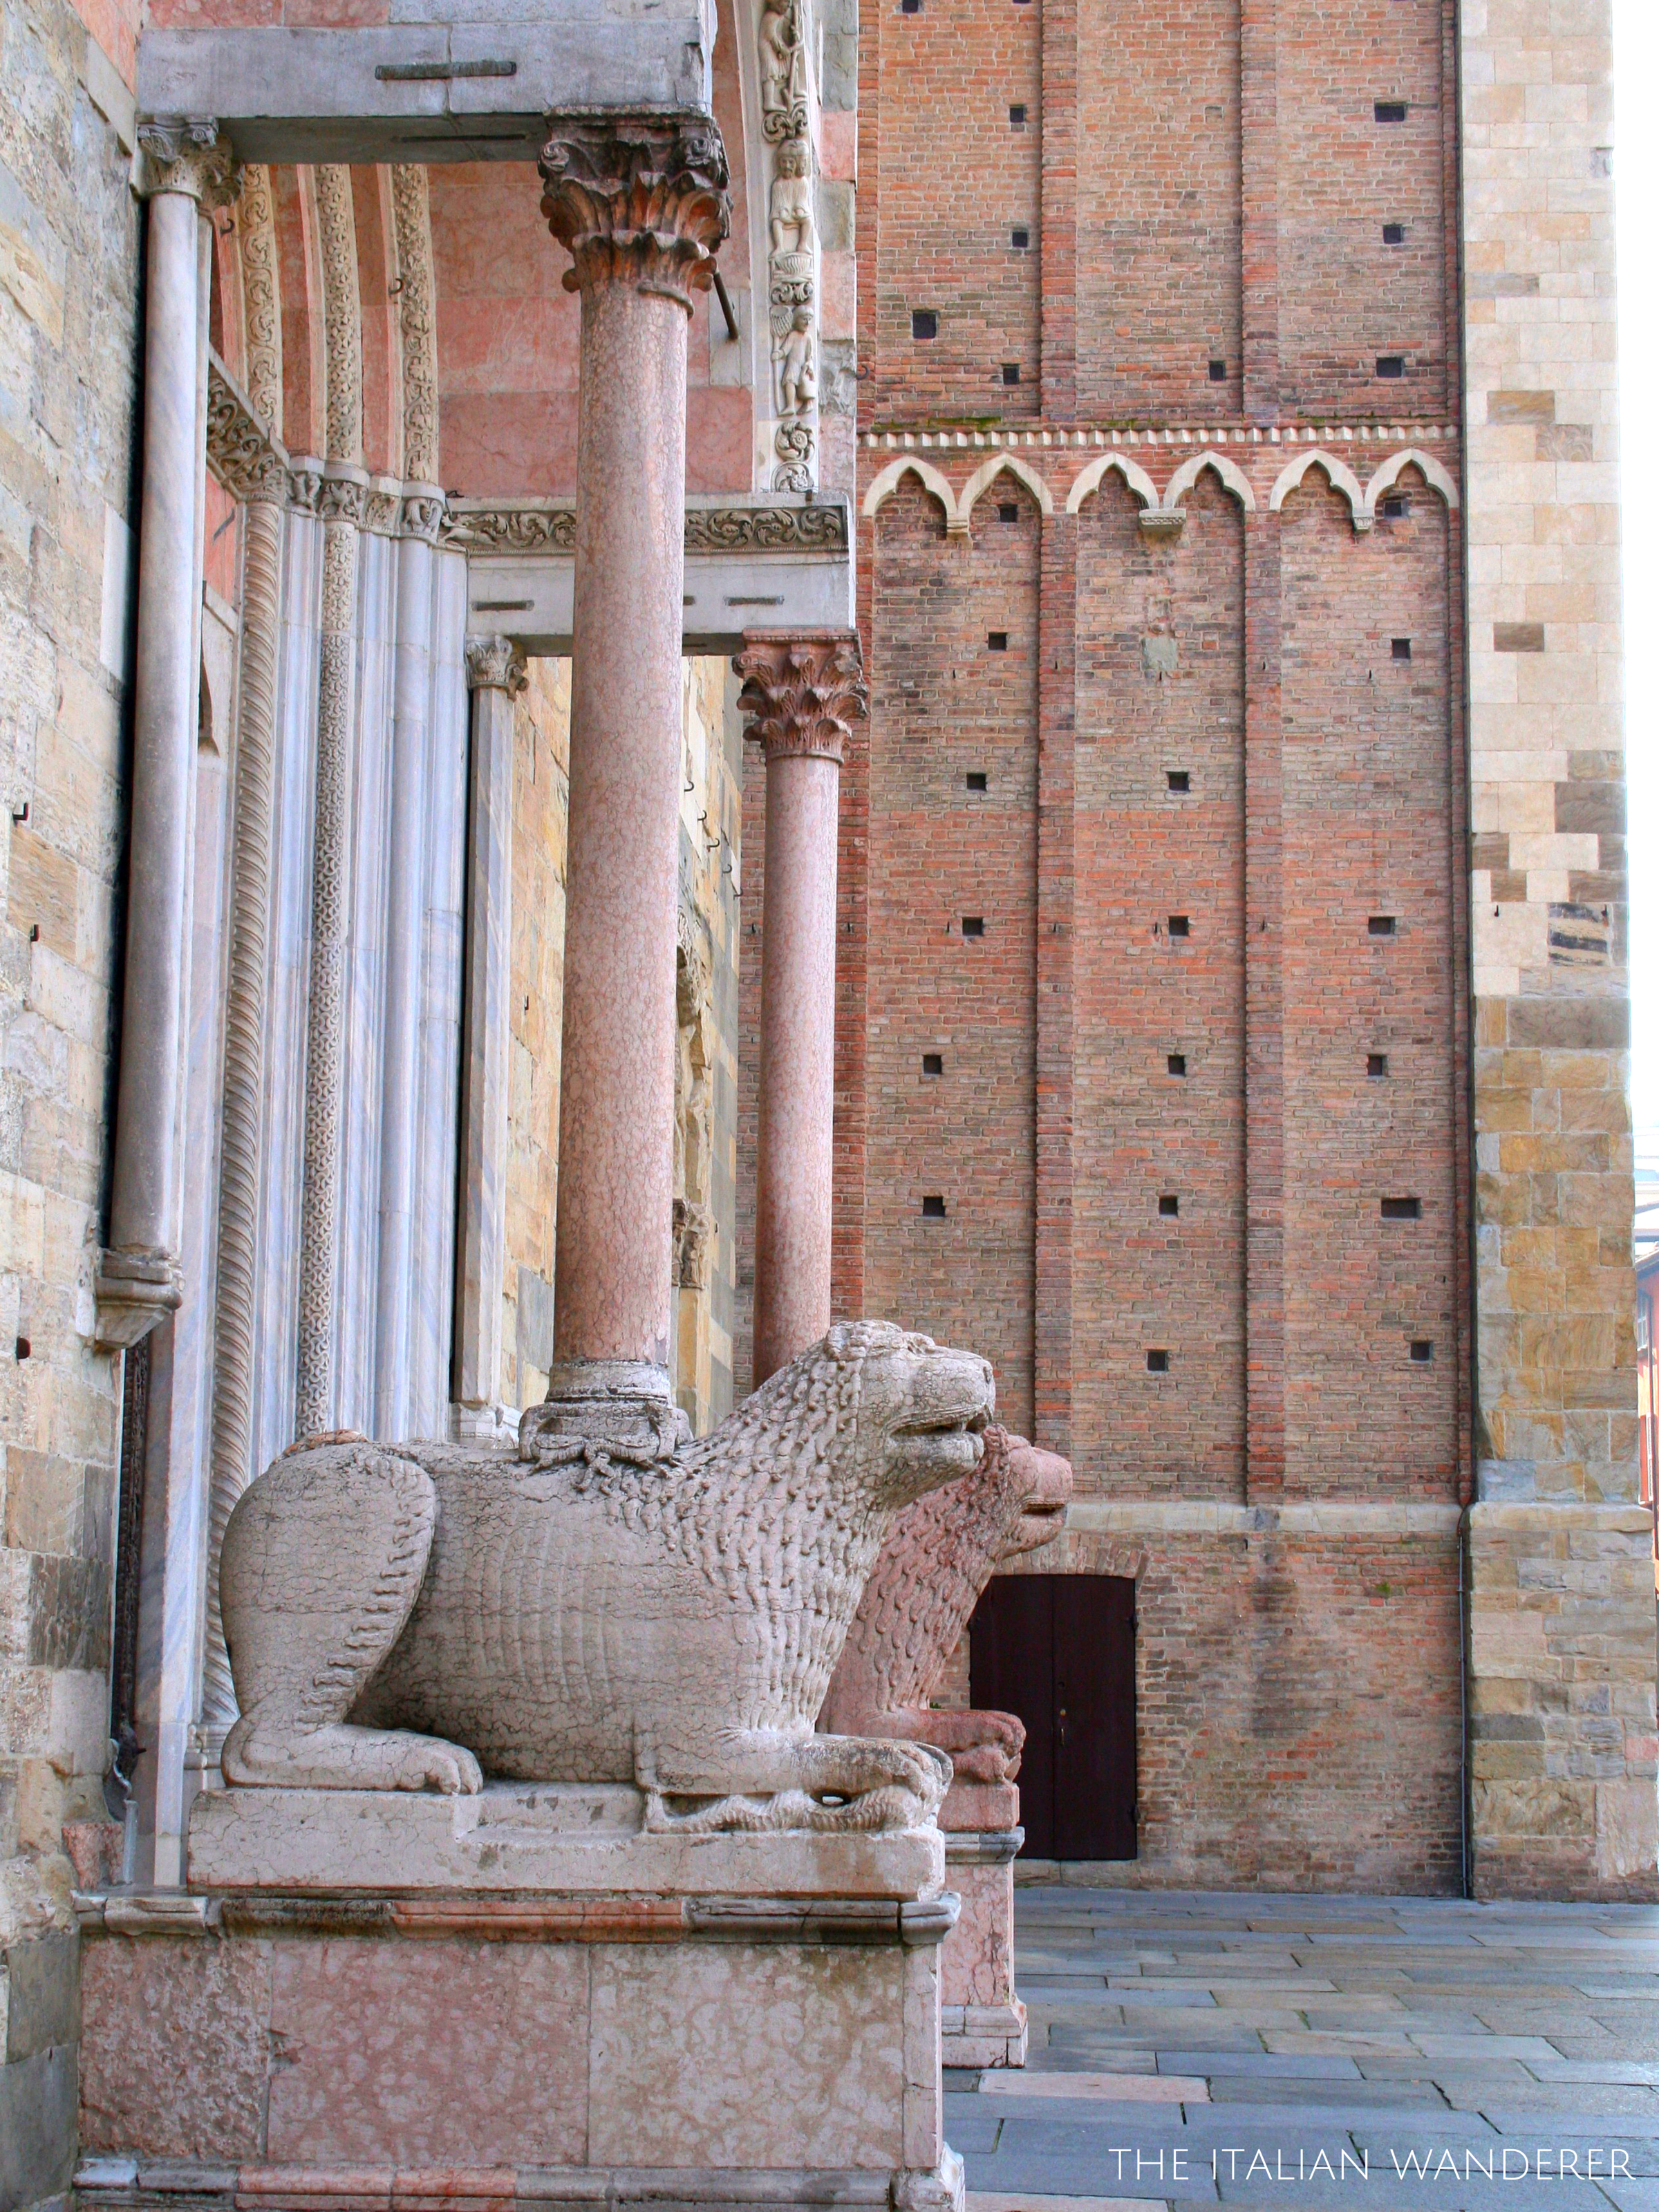 Entrance of the Cathedral of Parma